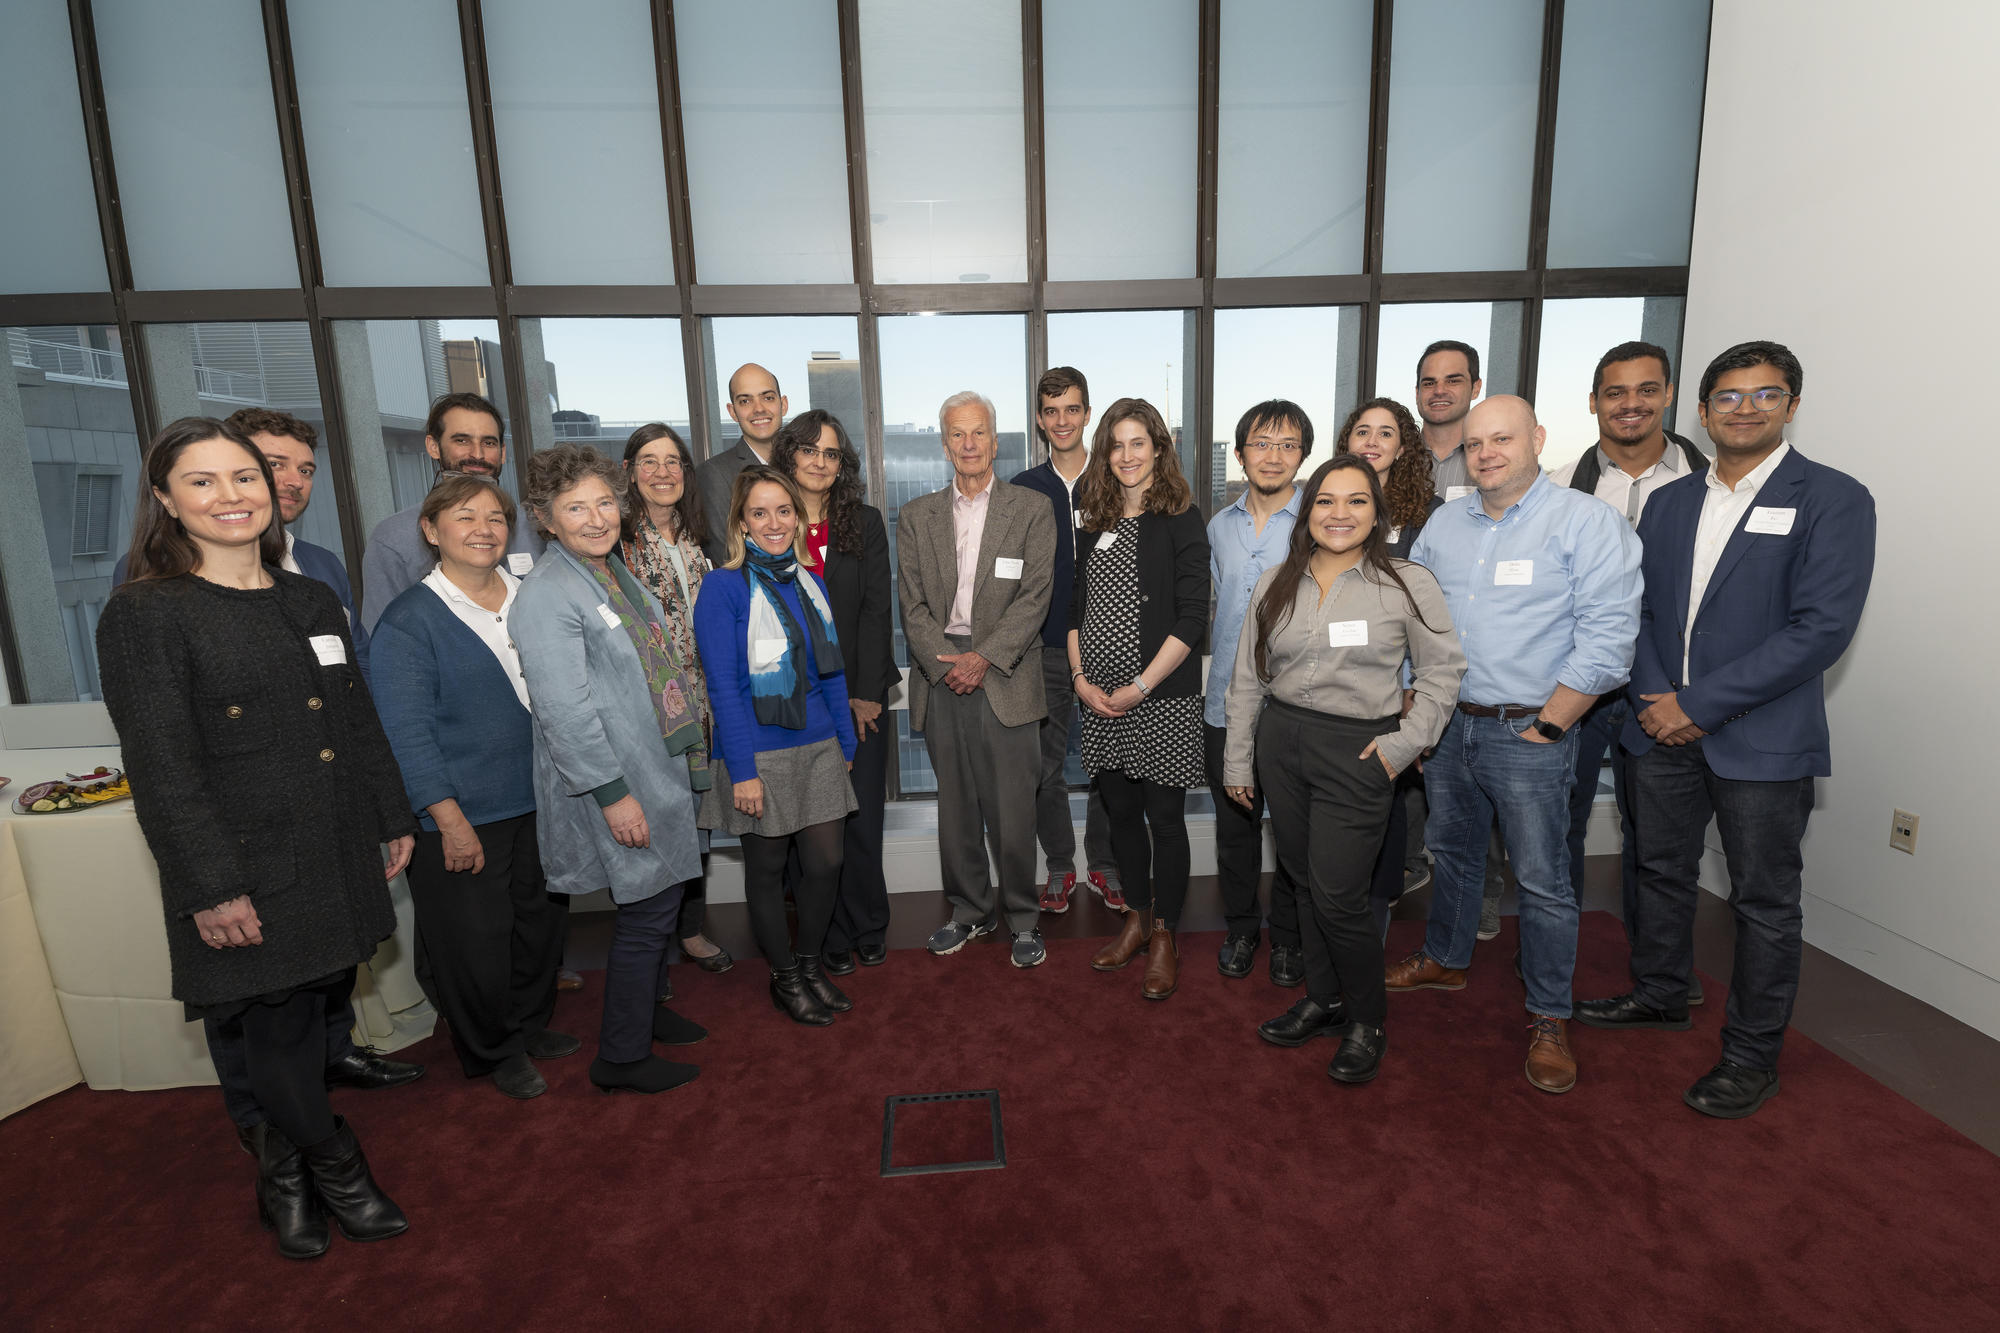 Lemann Brazil Research Fund awardees with Jorge Paulo Lemann, Marc Lemann, and Lemann Foundation leadership and staff